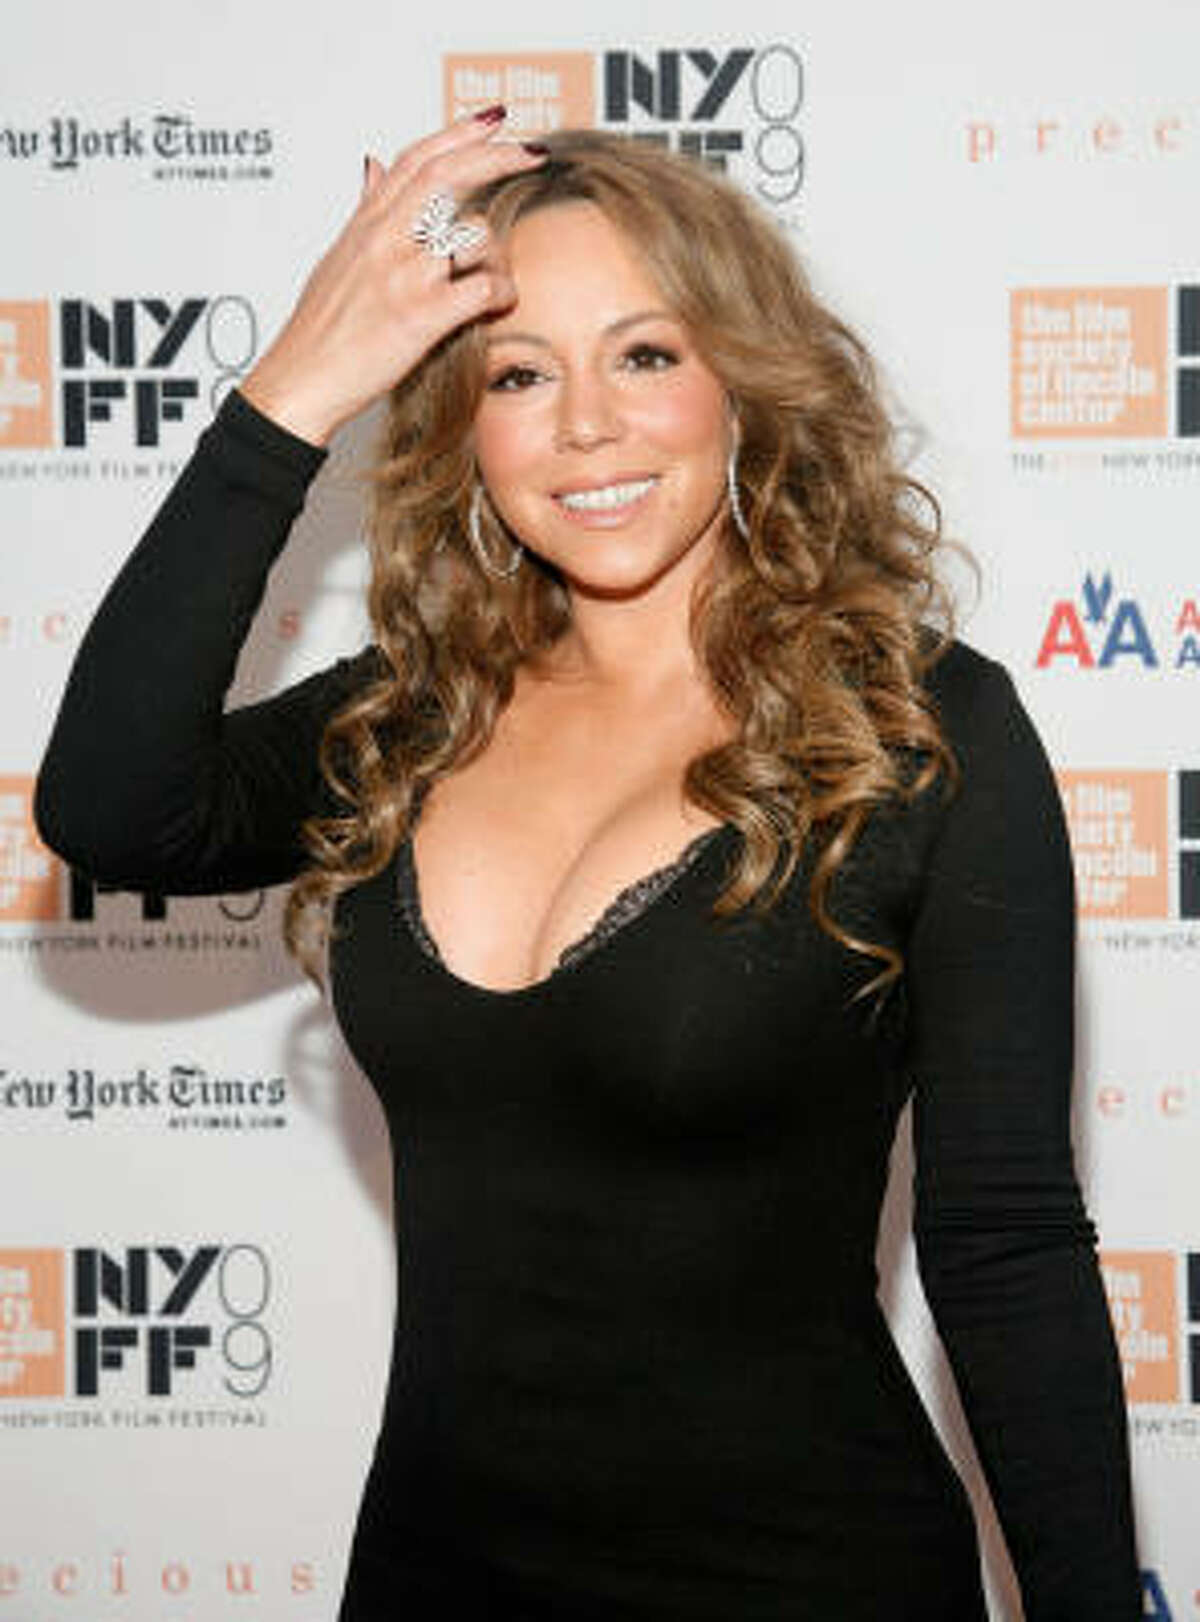 Many think Mariah's mane is not all hers. What do you think? Leave a comment below.